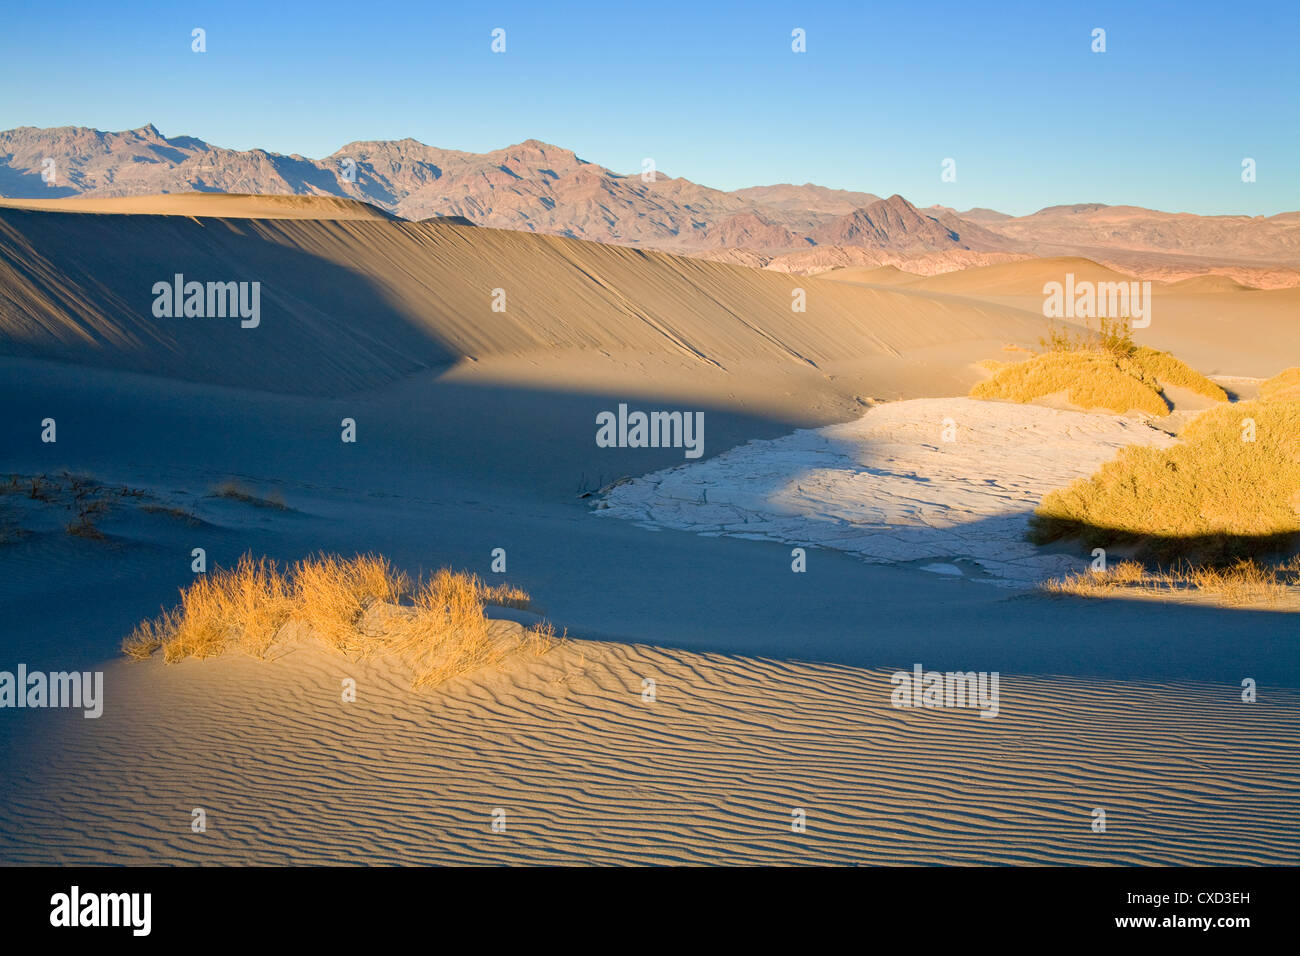 Mesquite Flat Sand Dunes, Death Valley National Park, California, United States of America, North America - Stock Image